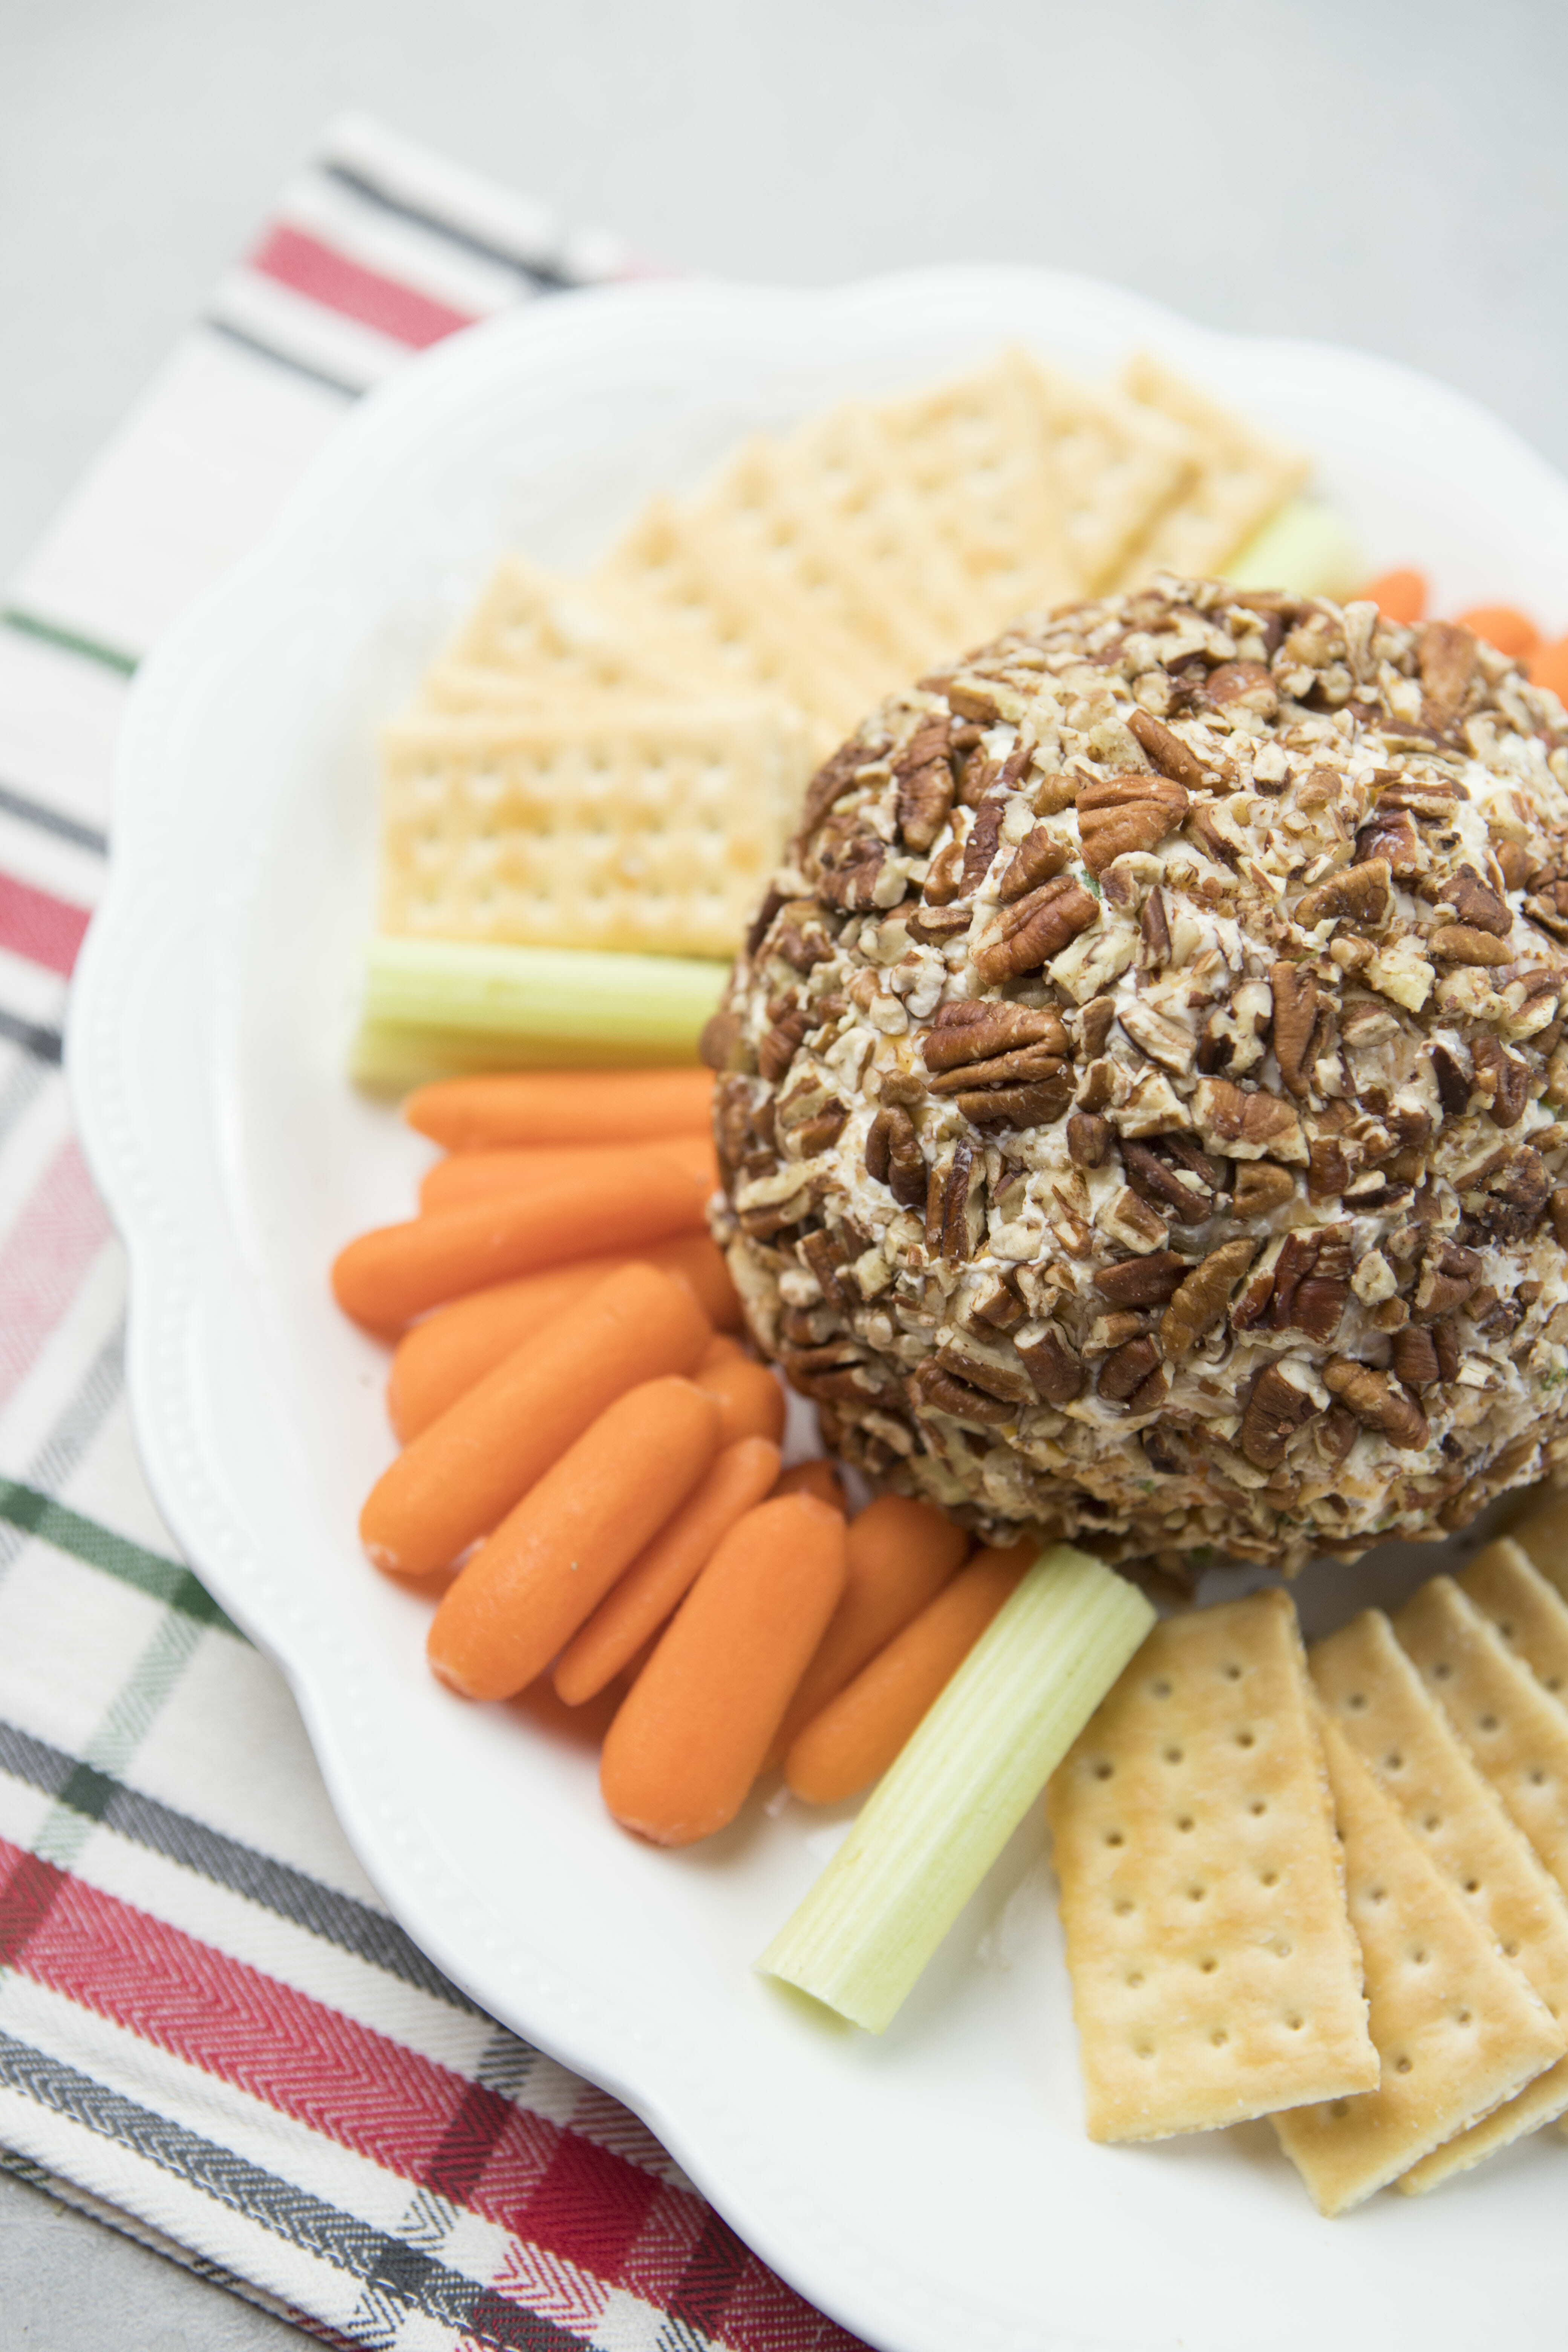 Perfect Cheeseball from Our Best Bites